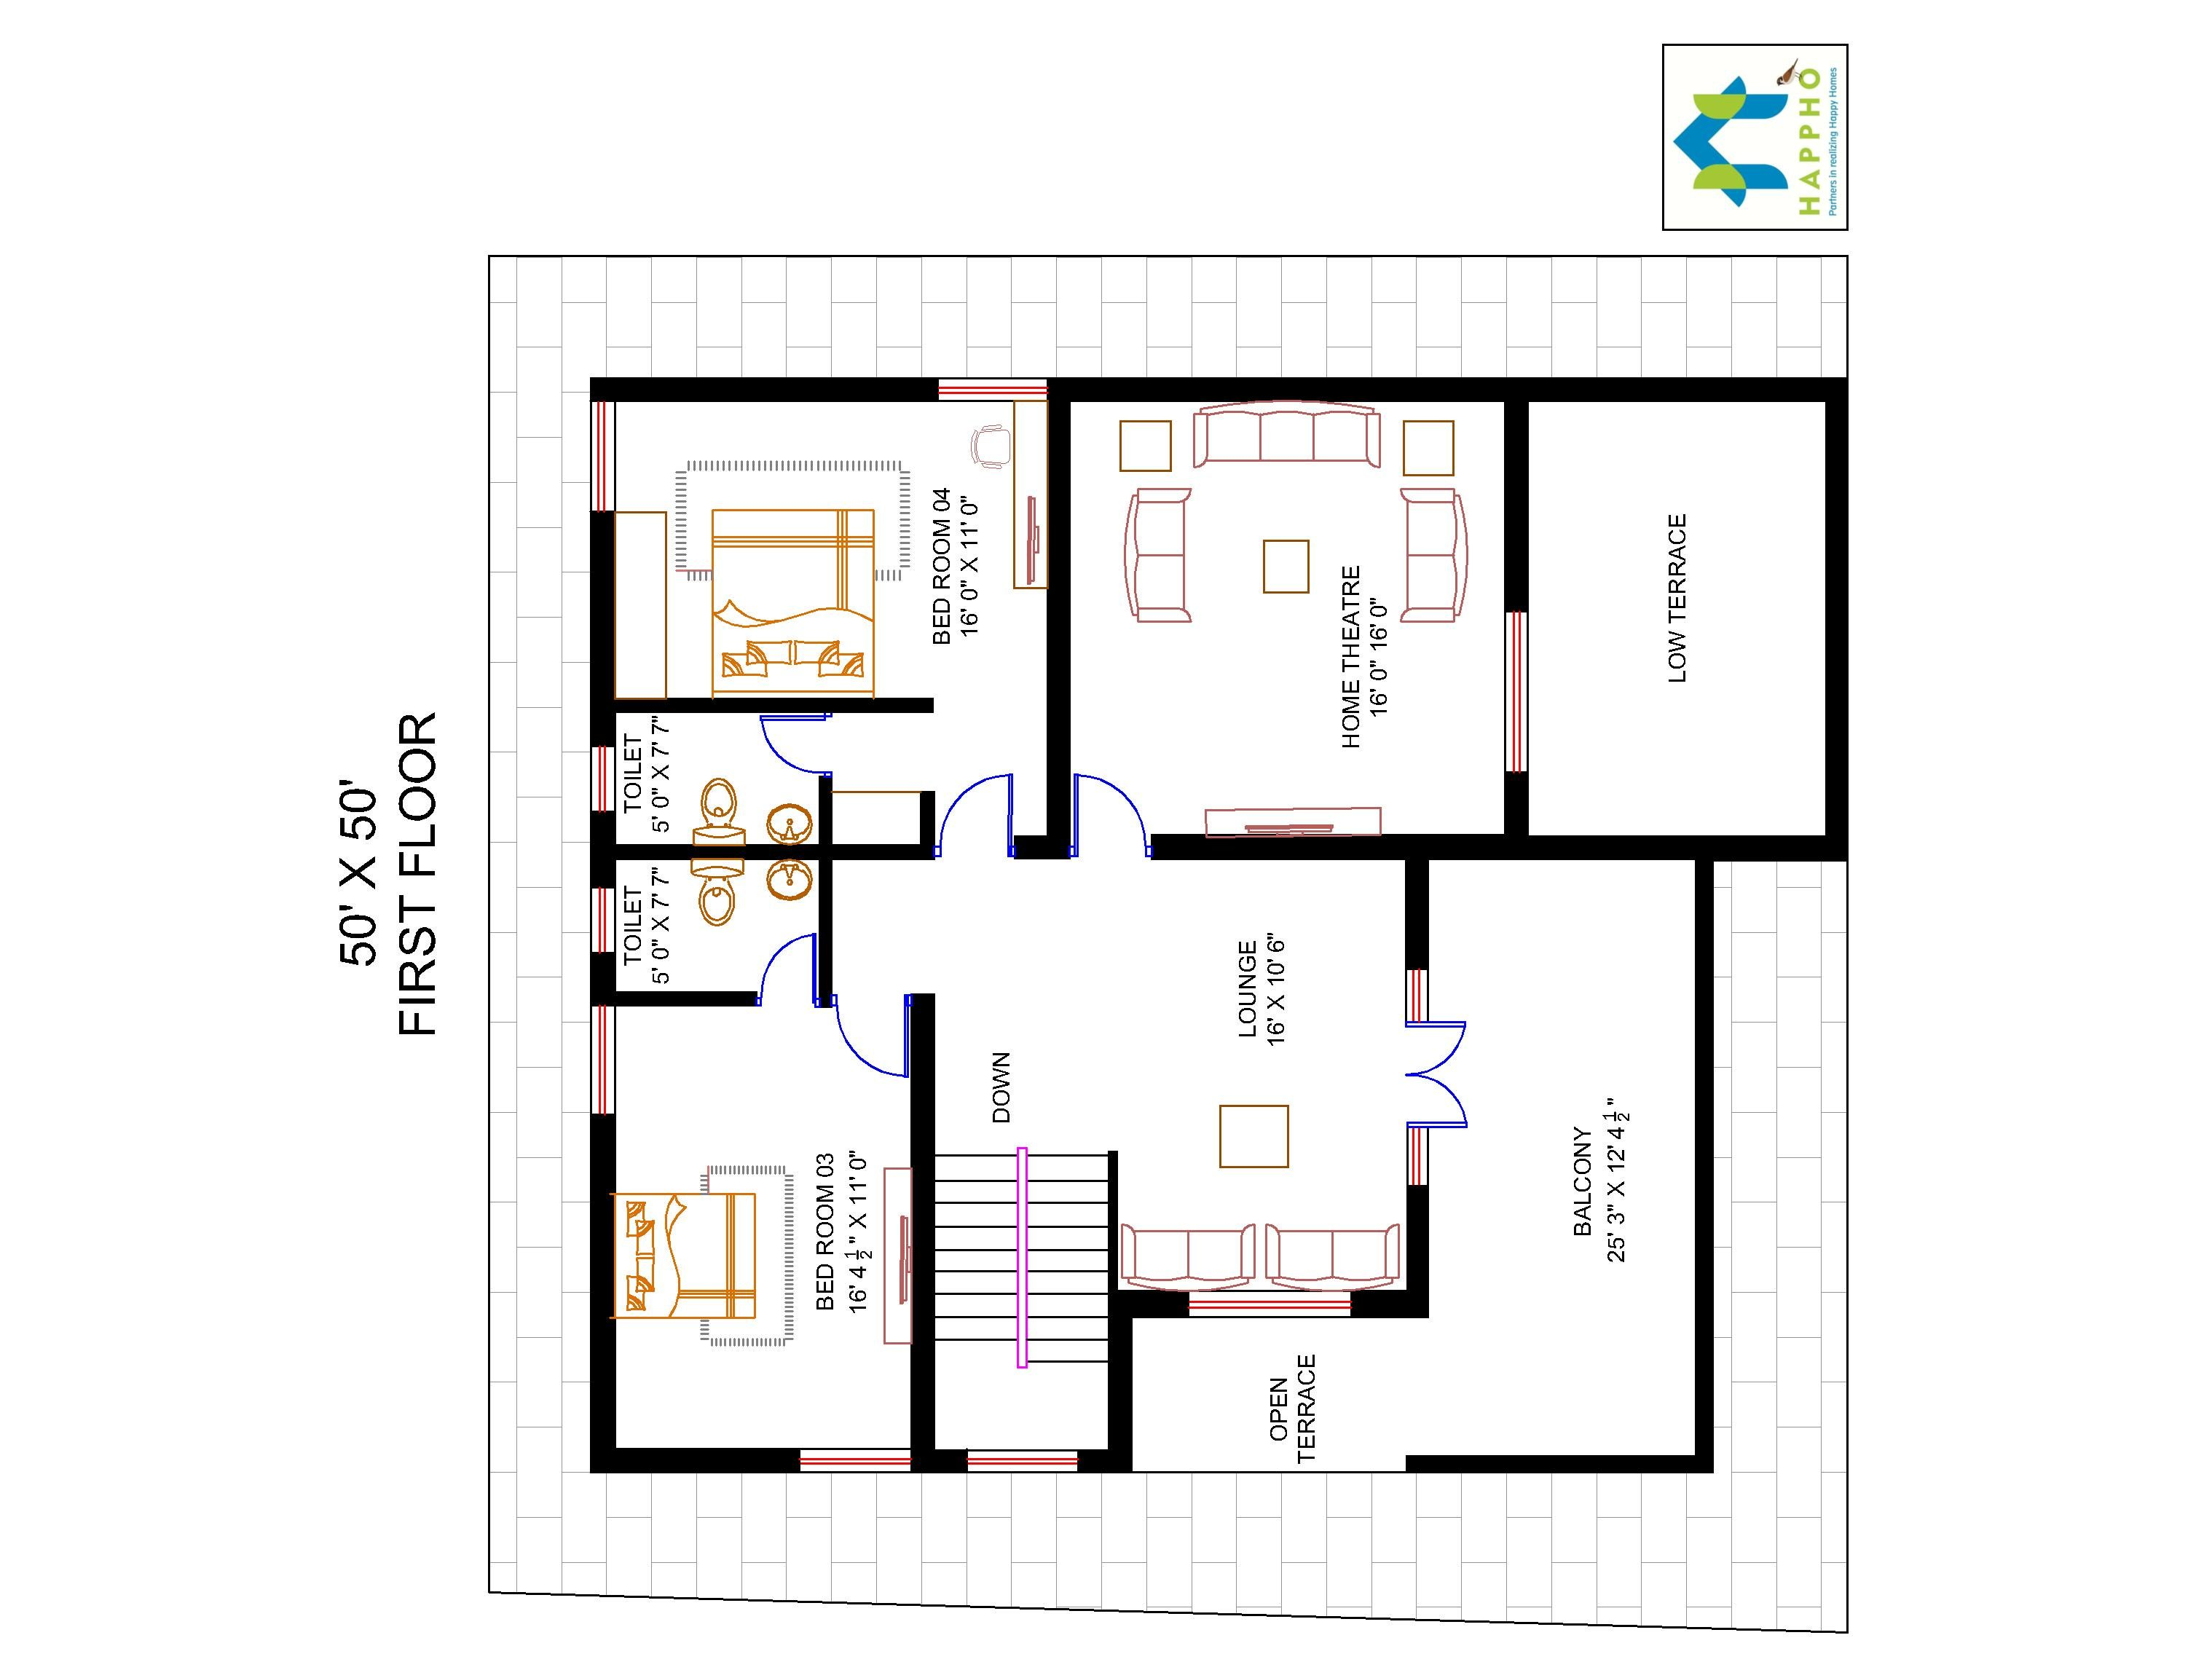 4 bhk floor plan for 50 x 50 plot 2500 square feet 278 for 2500 square feet floor plans